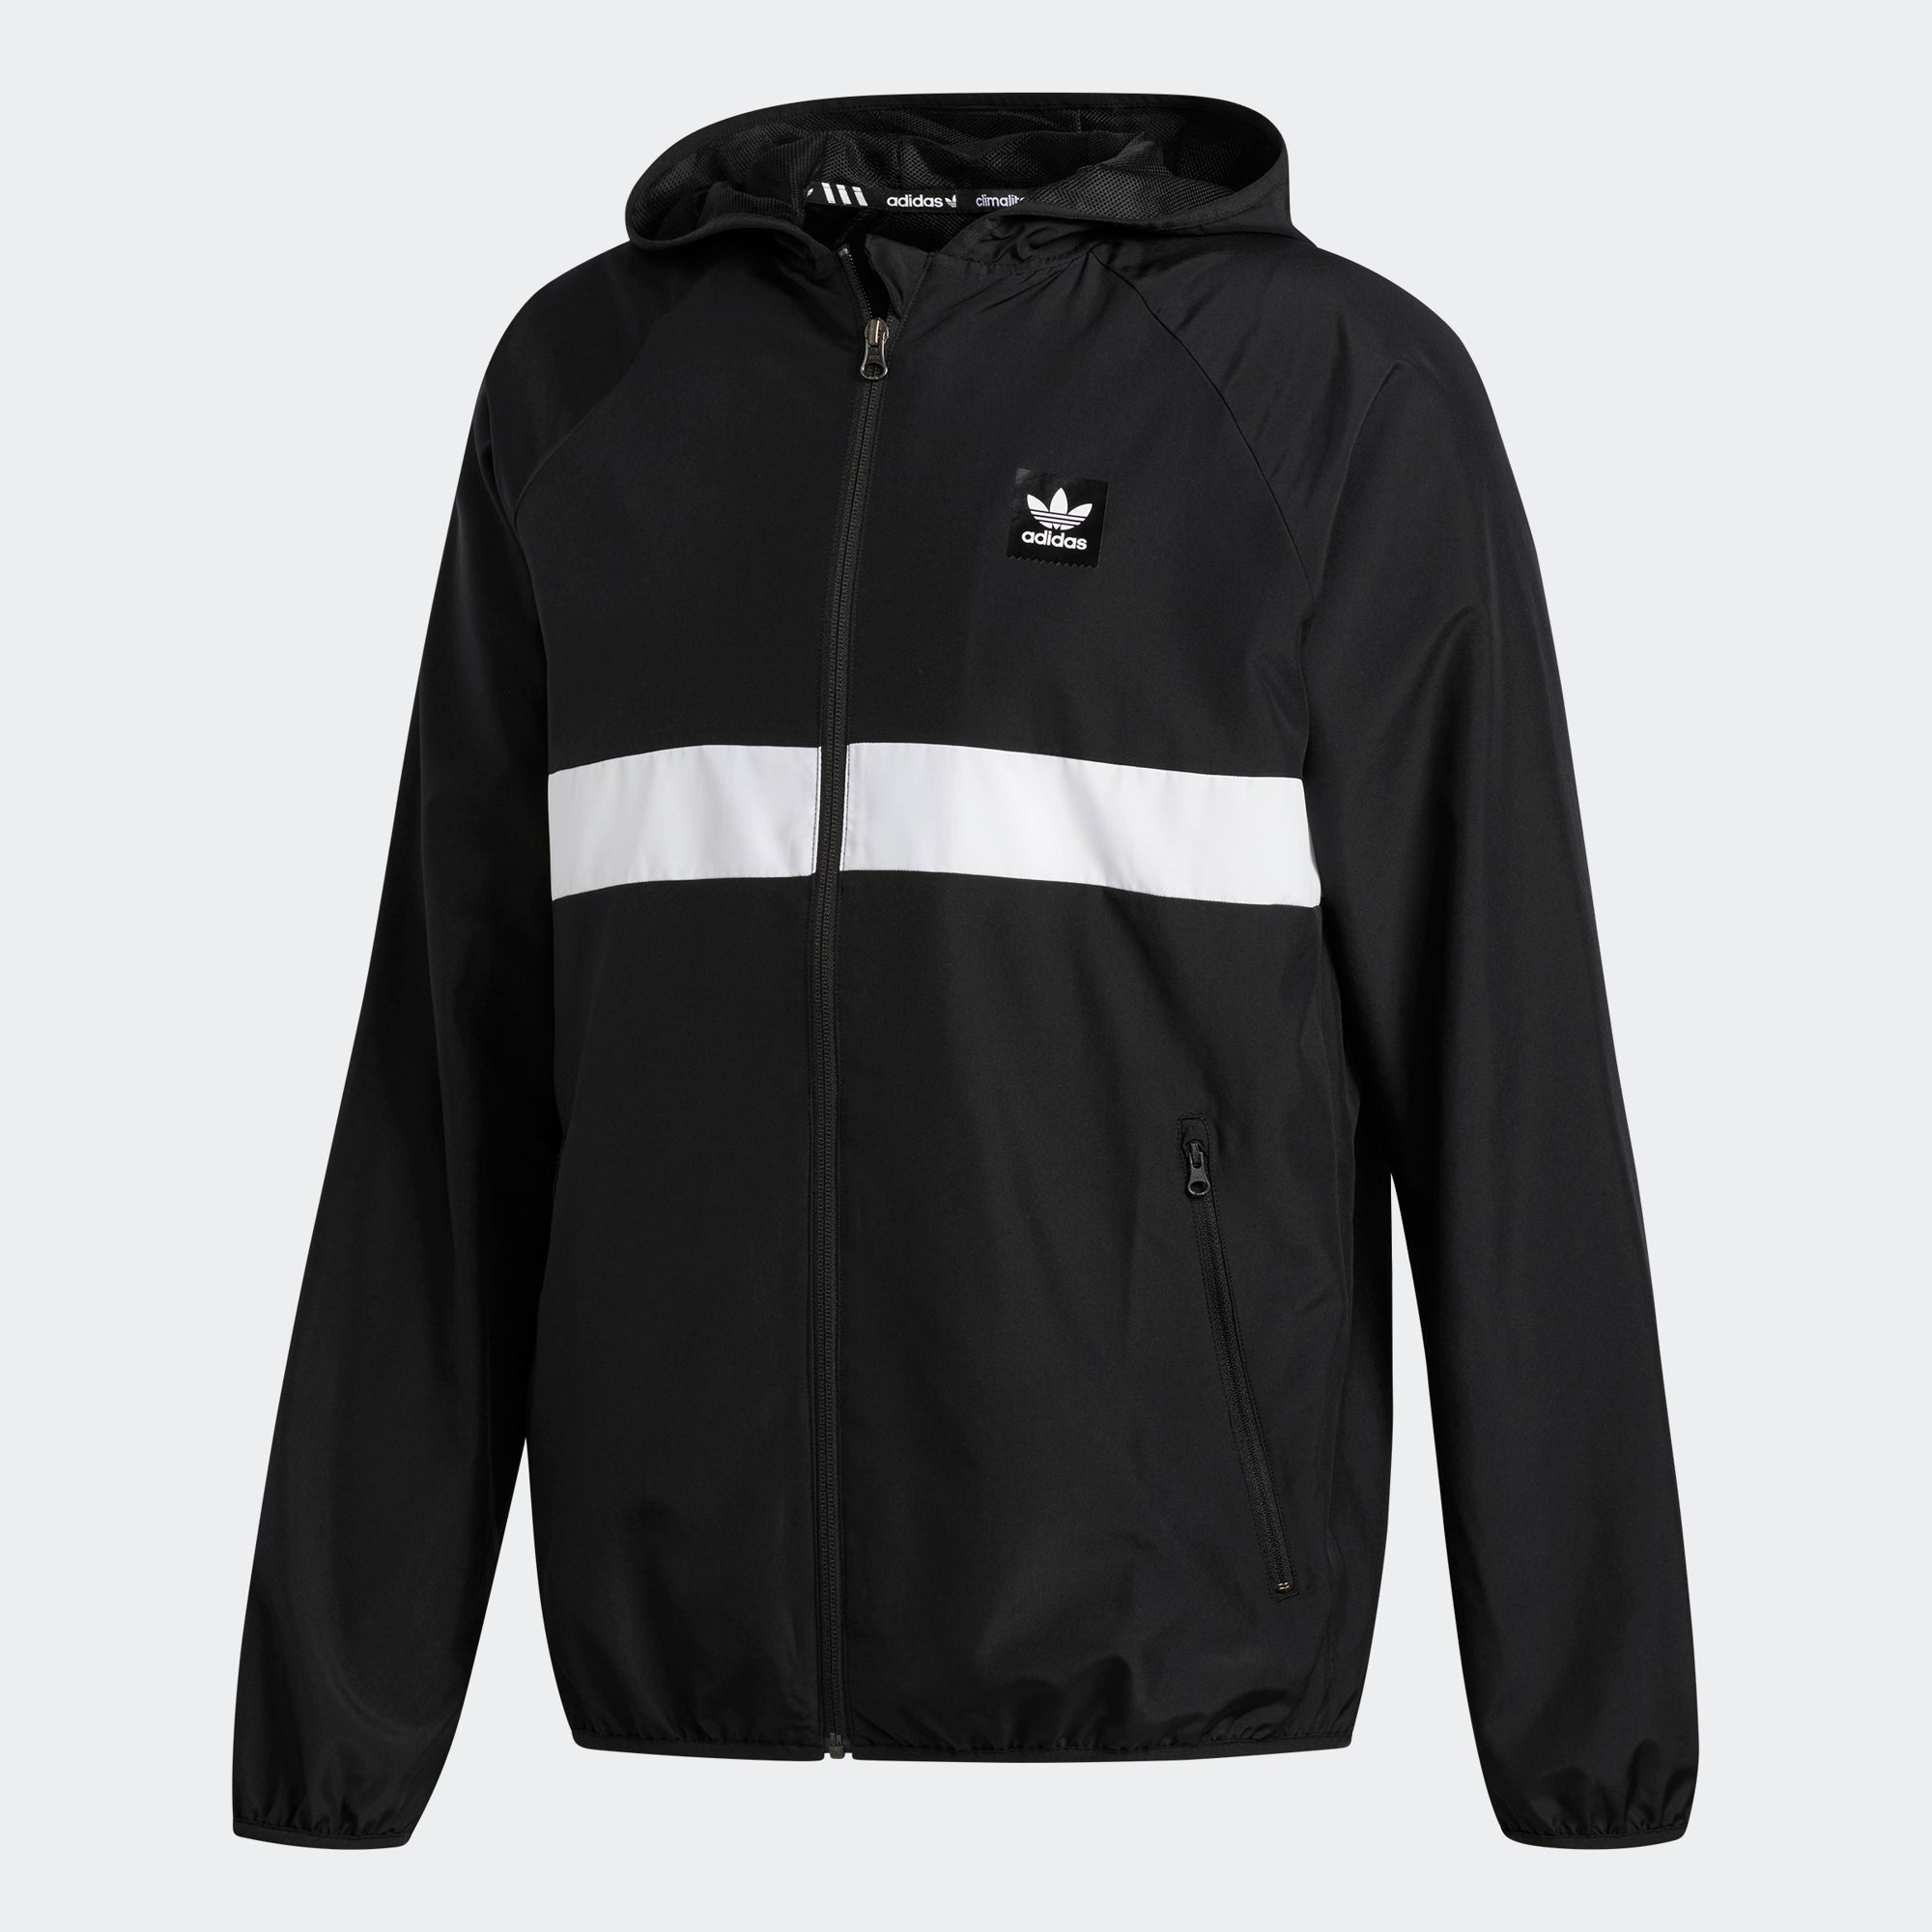 premium selection d0ccf d19a6 Men s adidas Originals Blackbird Packable Wind Jacket Black